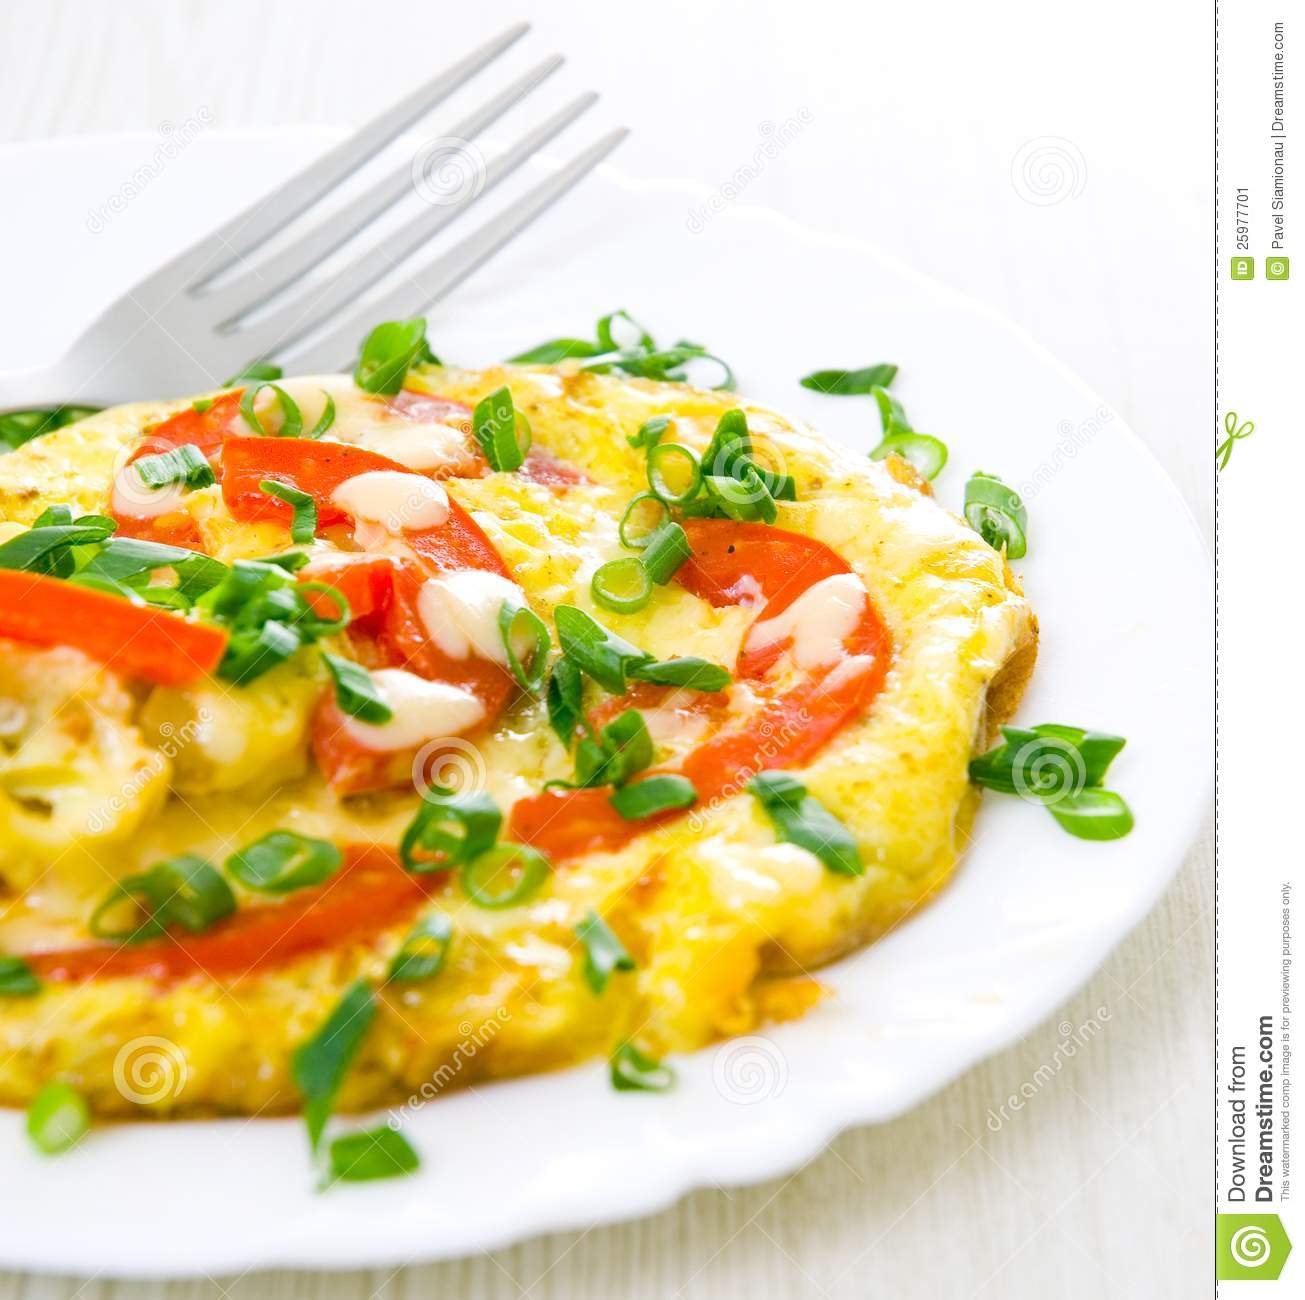 Omelet With Tomatoes Stock Image - Image: 25977701